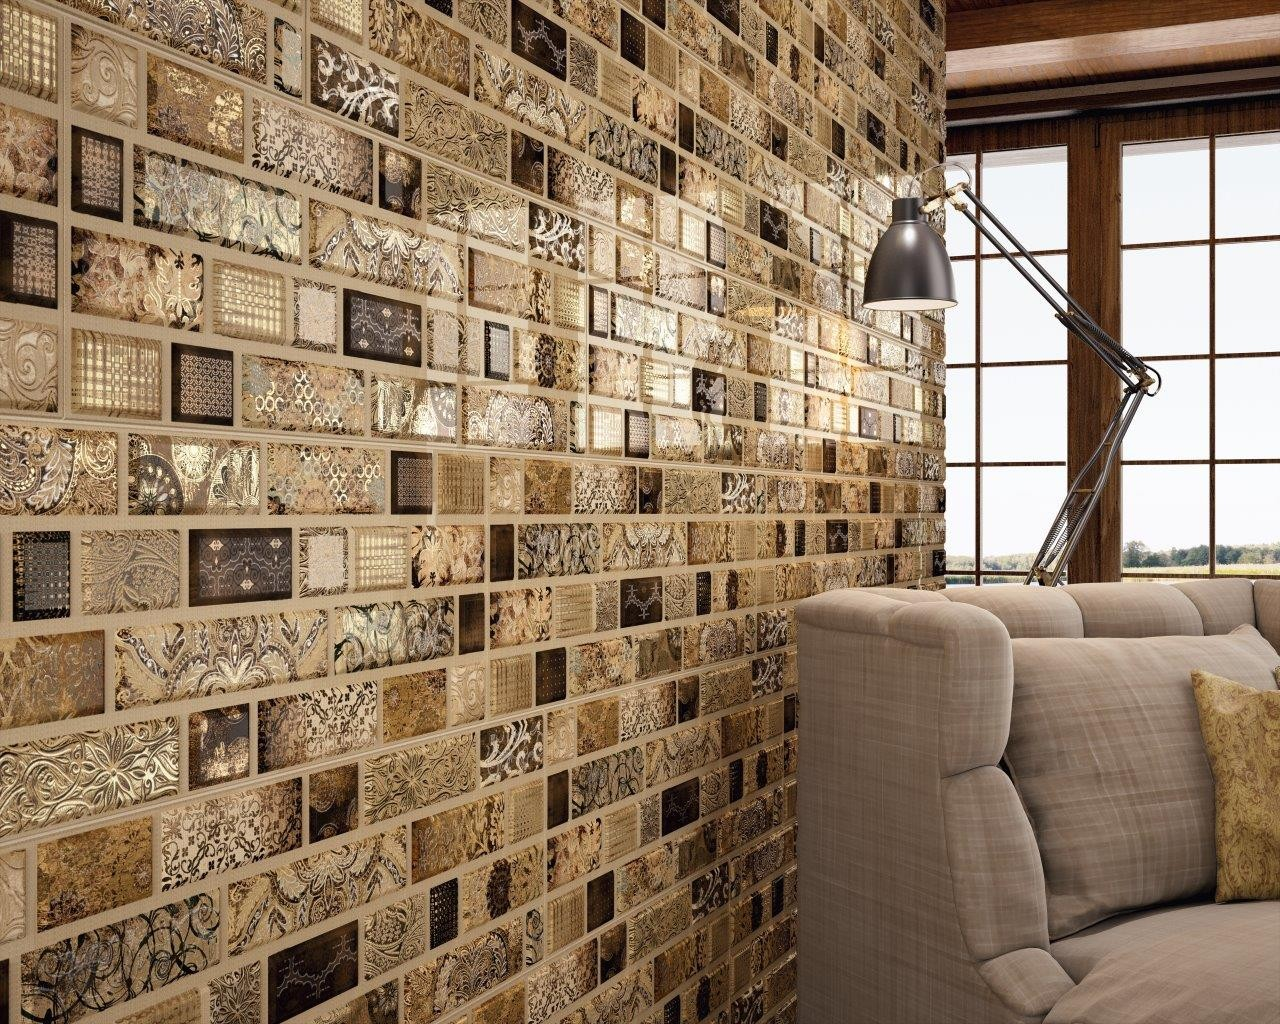 Carisma Brown Ceramic Feature Wall Brick Effect Tile